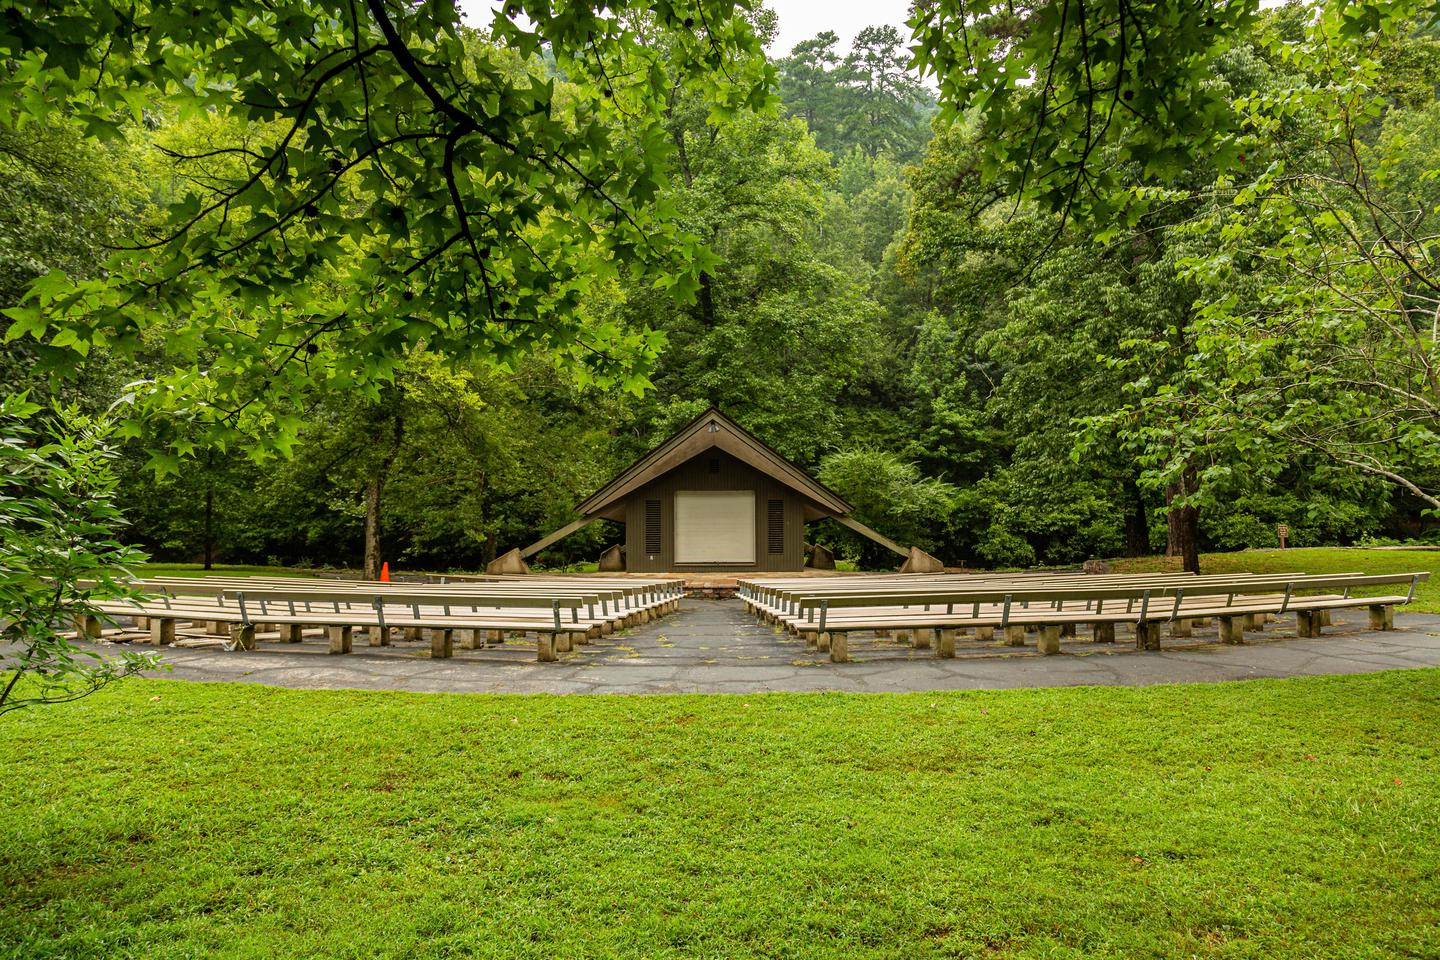 AmphitheaterThe amphitheater is a great place to host events and bring campers together